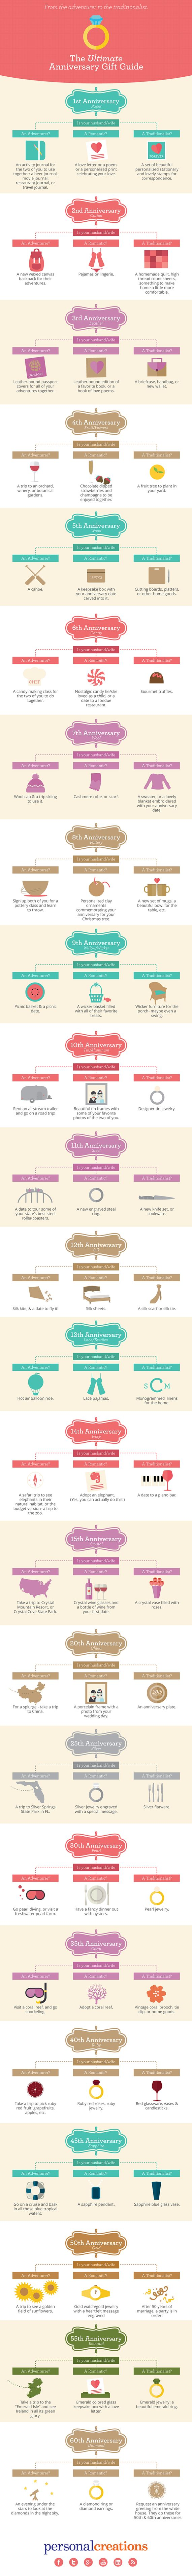 Anniversary gift ideas for every year of marriage